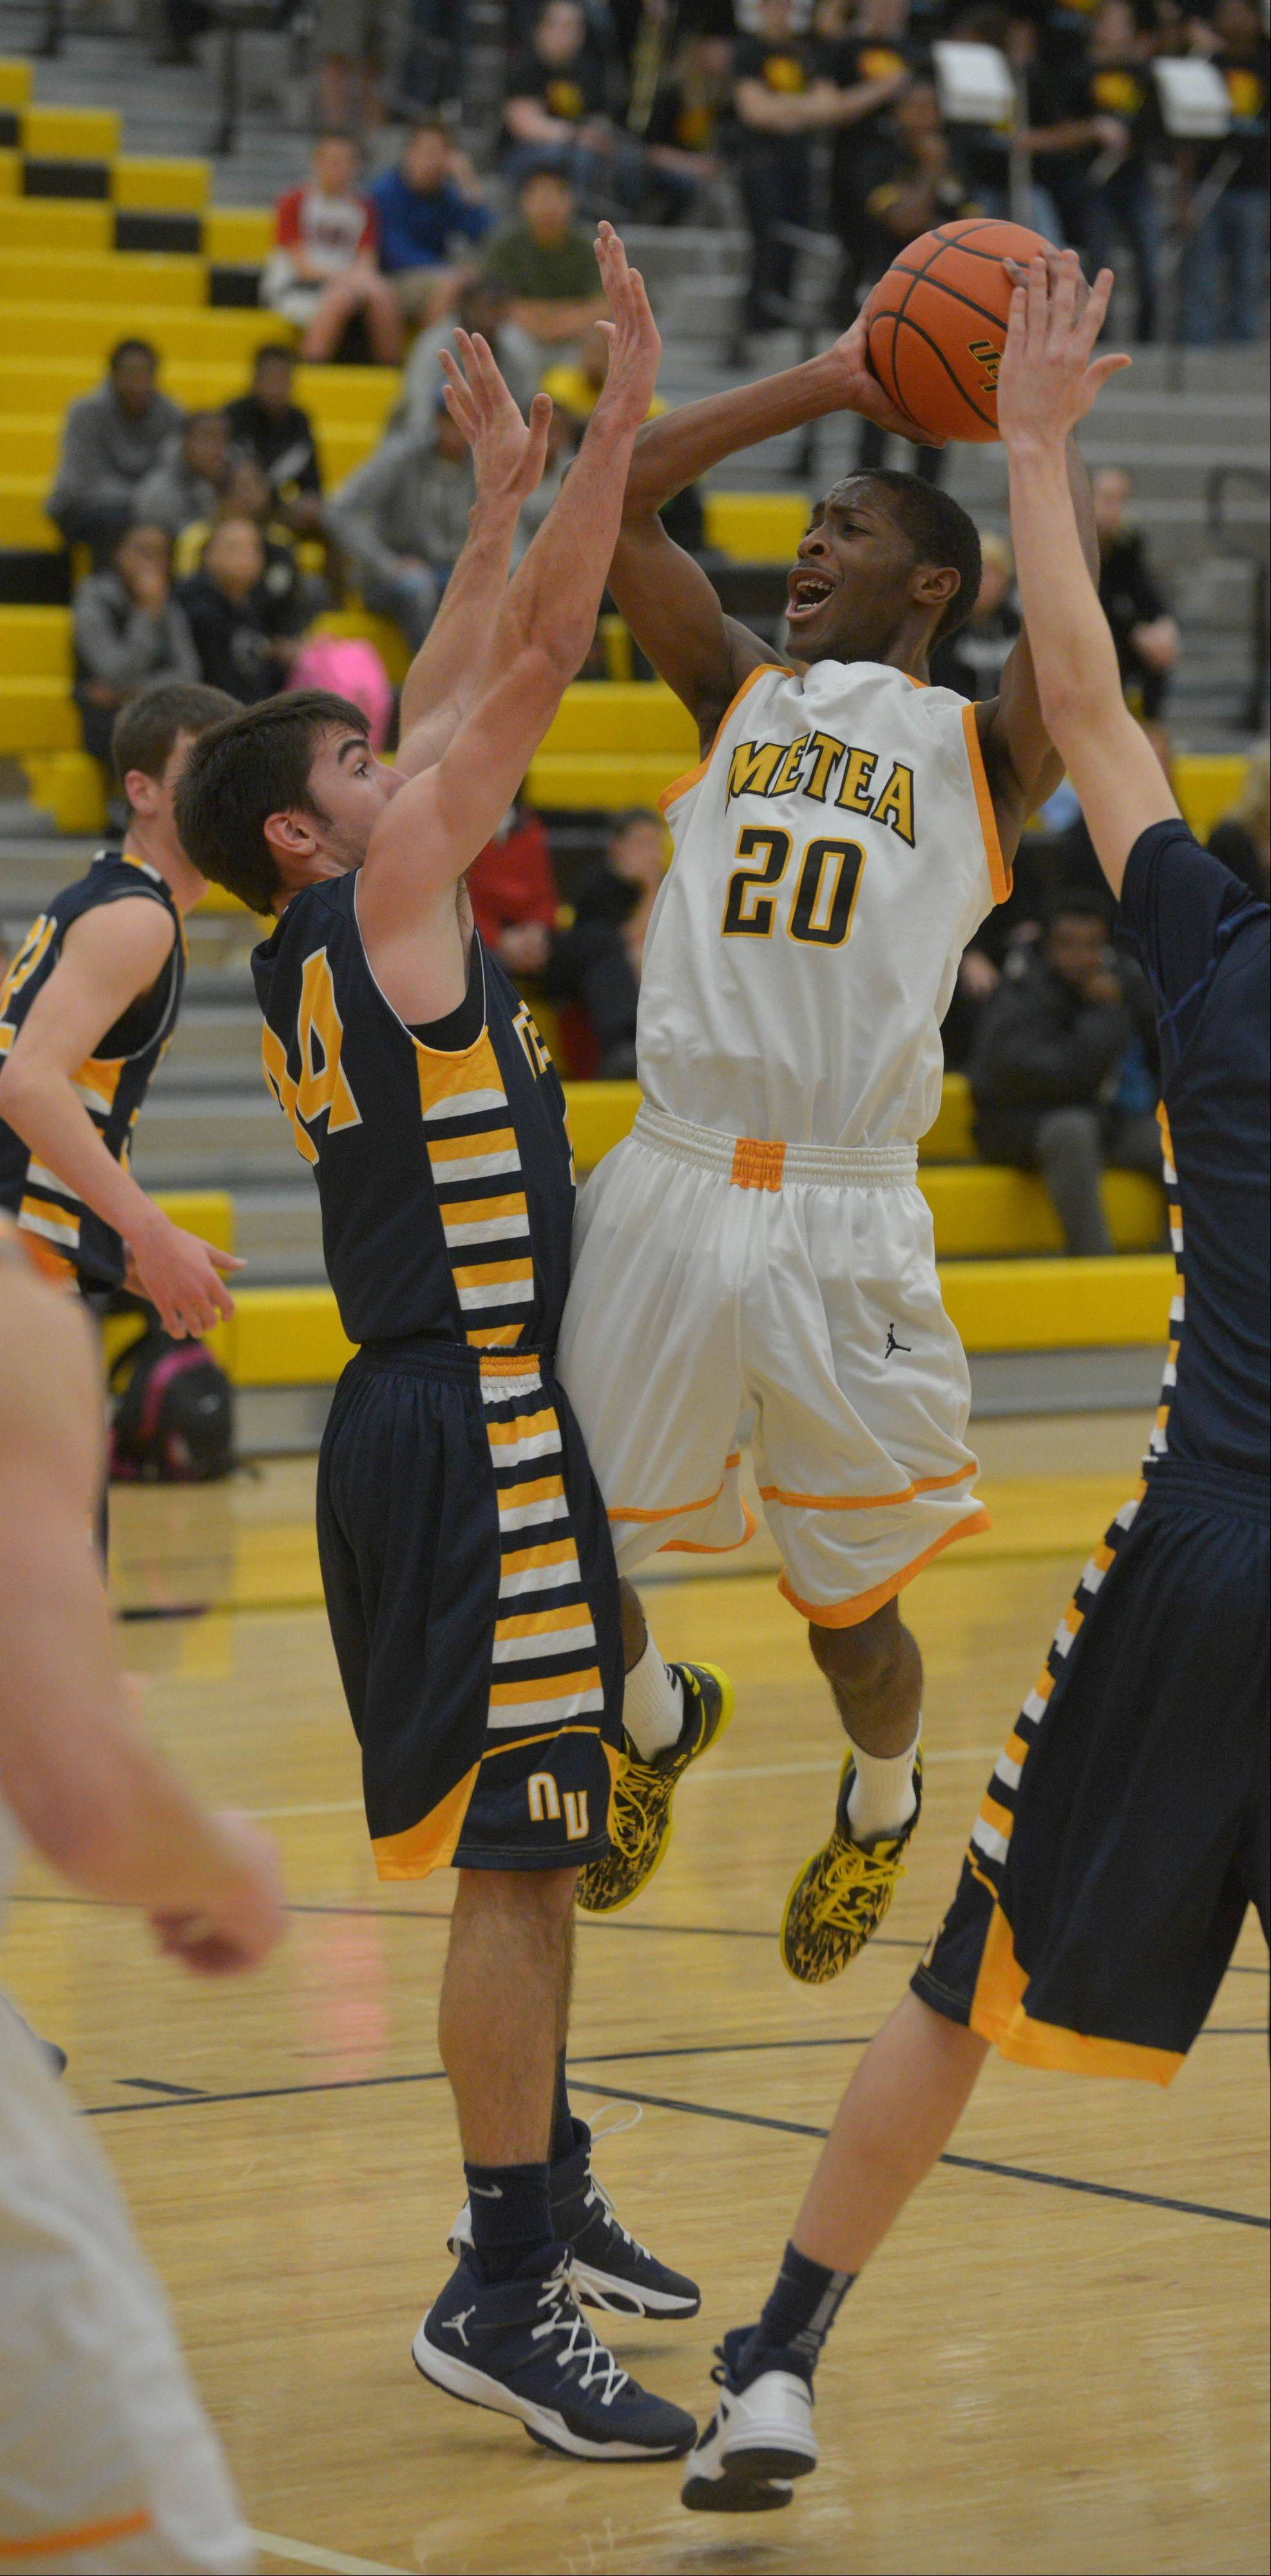 Marquell Oliver of Metea Valley takes a shot.